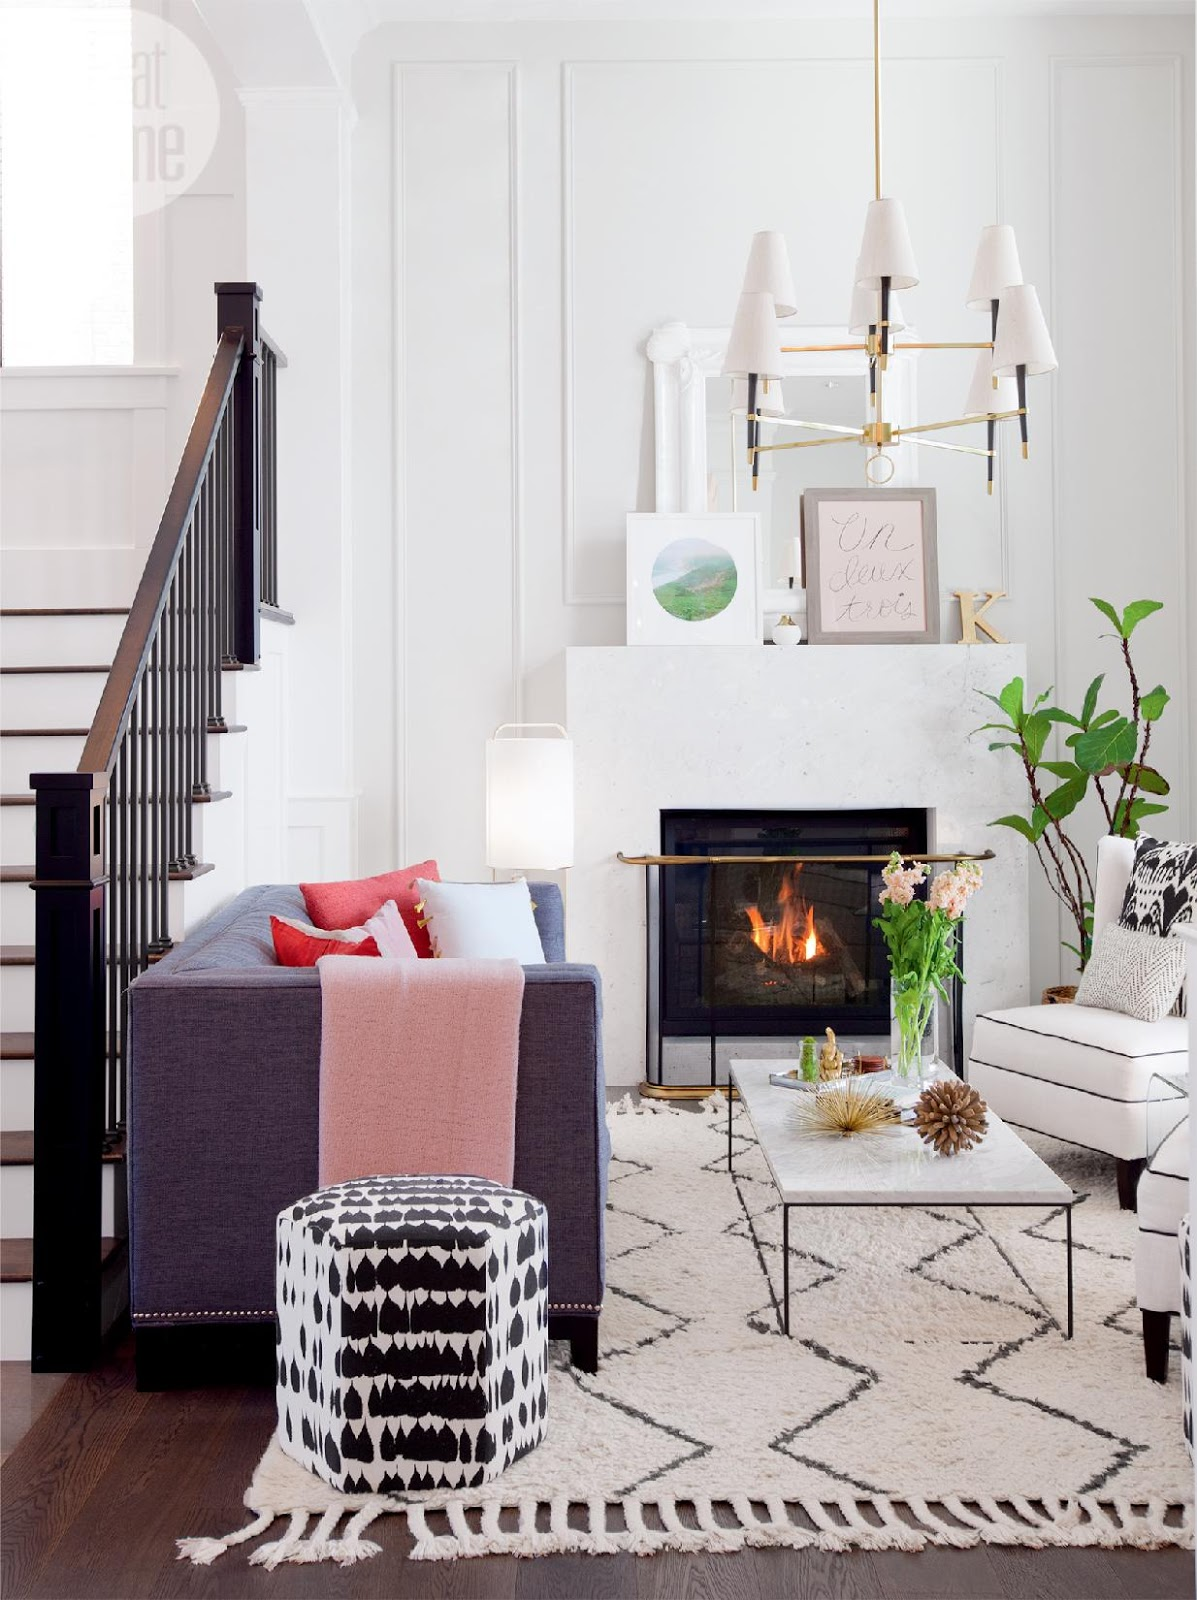 A stylish modern family home white and full of light - Decorology